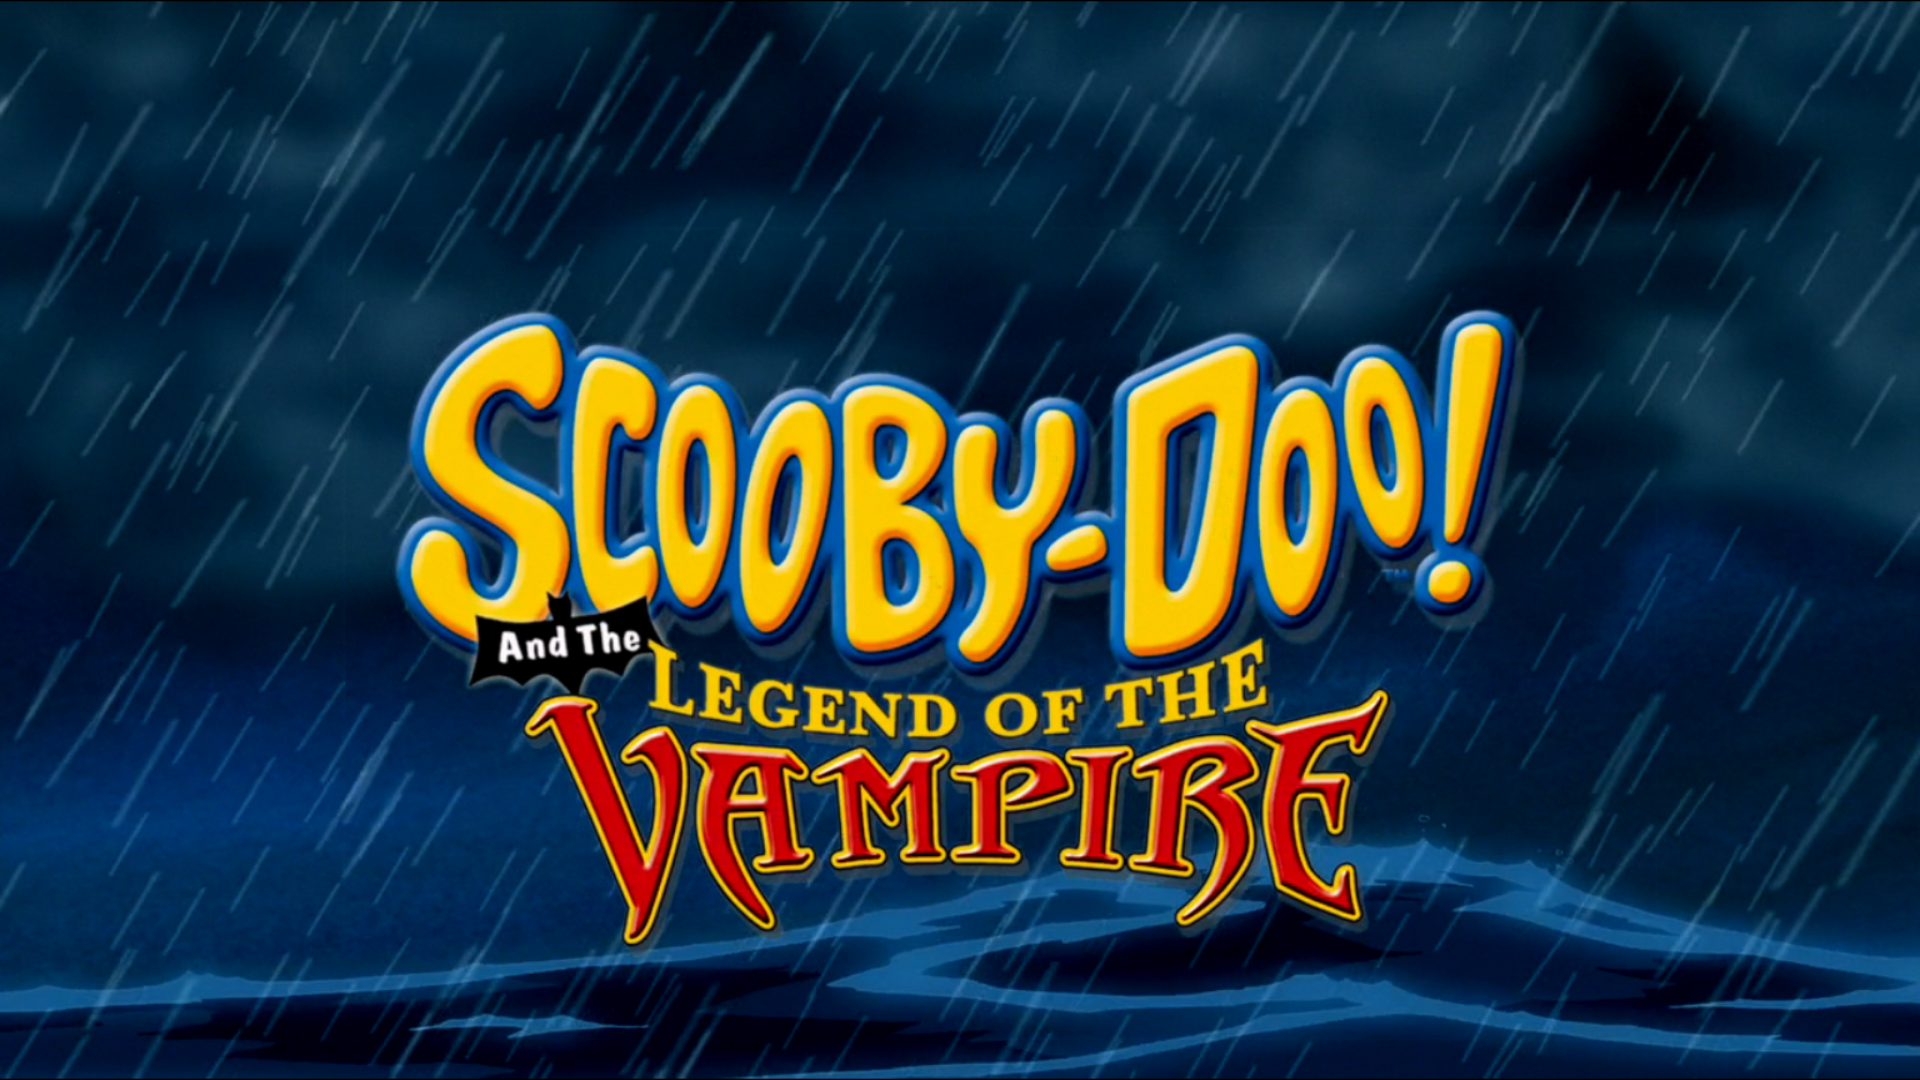 scooby doo in hindi download